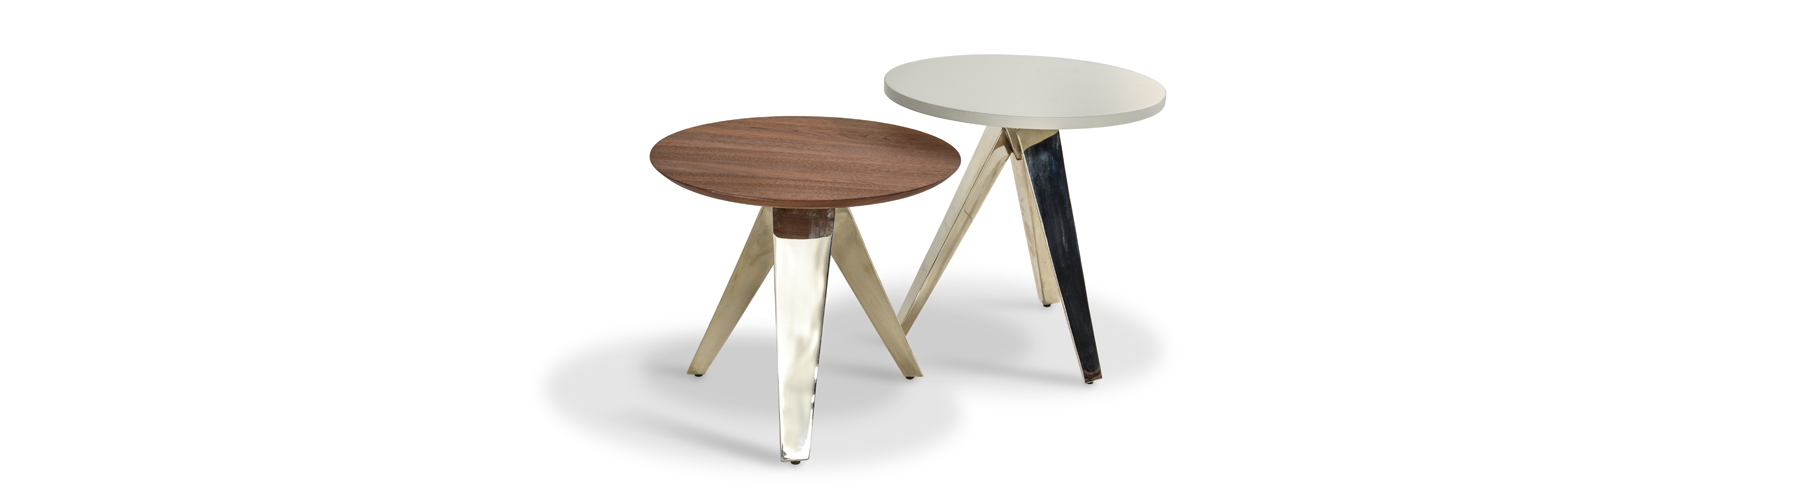 Twin - Table basse - William